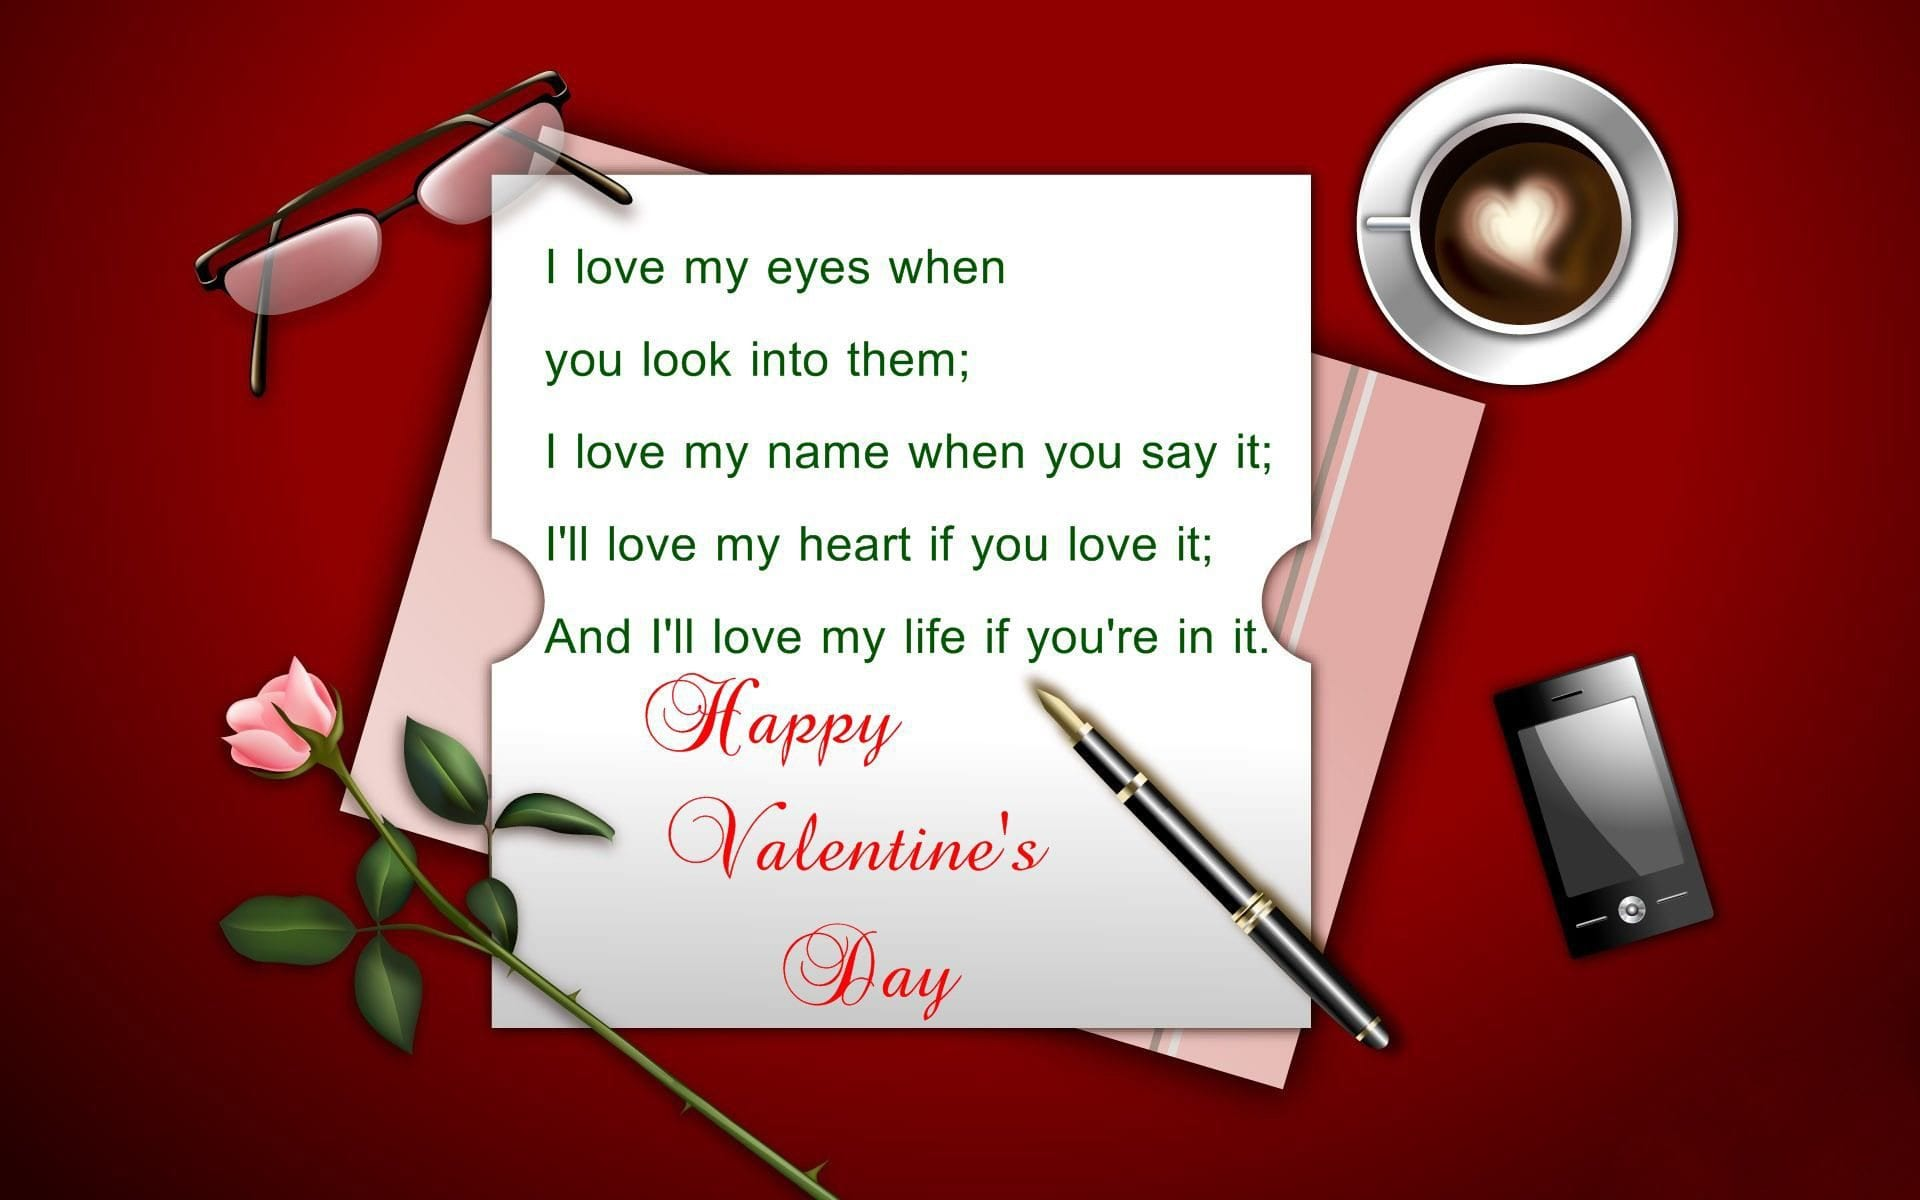 Valentines-Day-2014-Ecards-And-Sms-Images